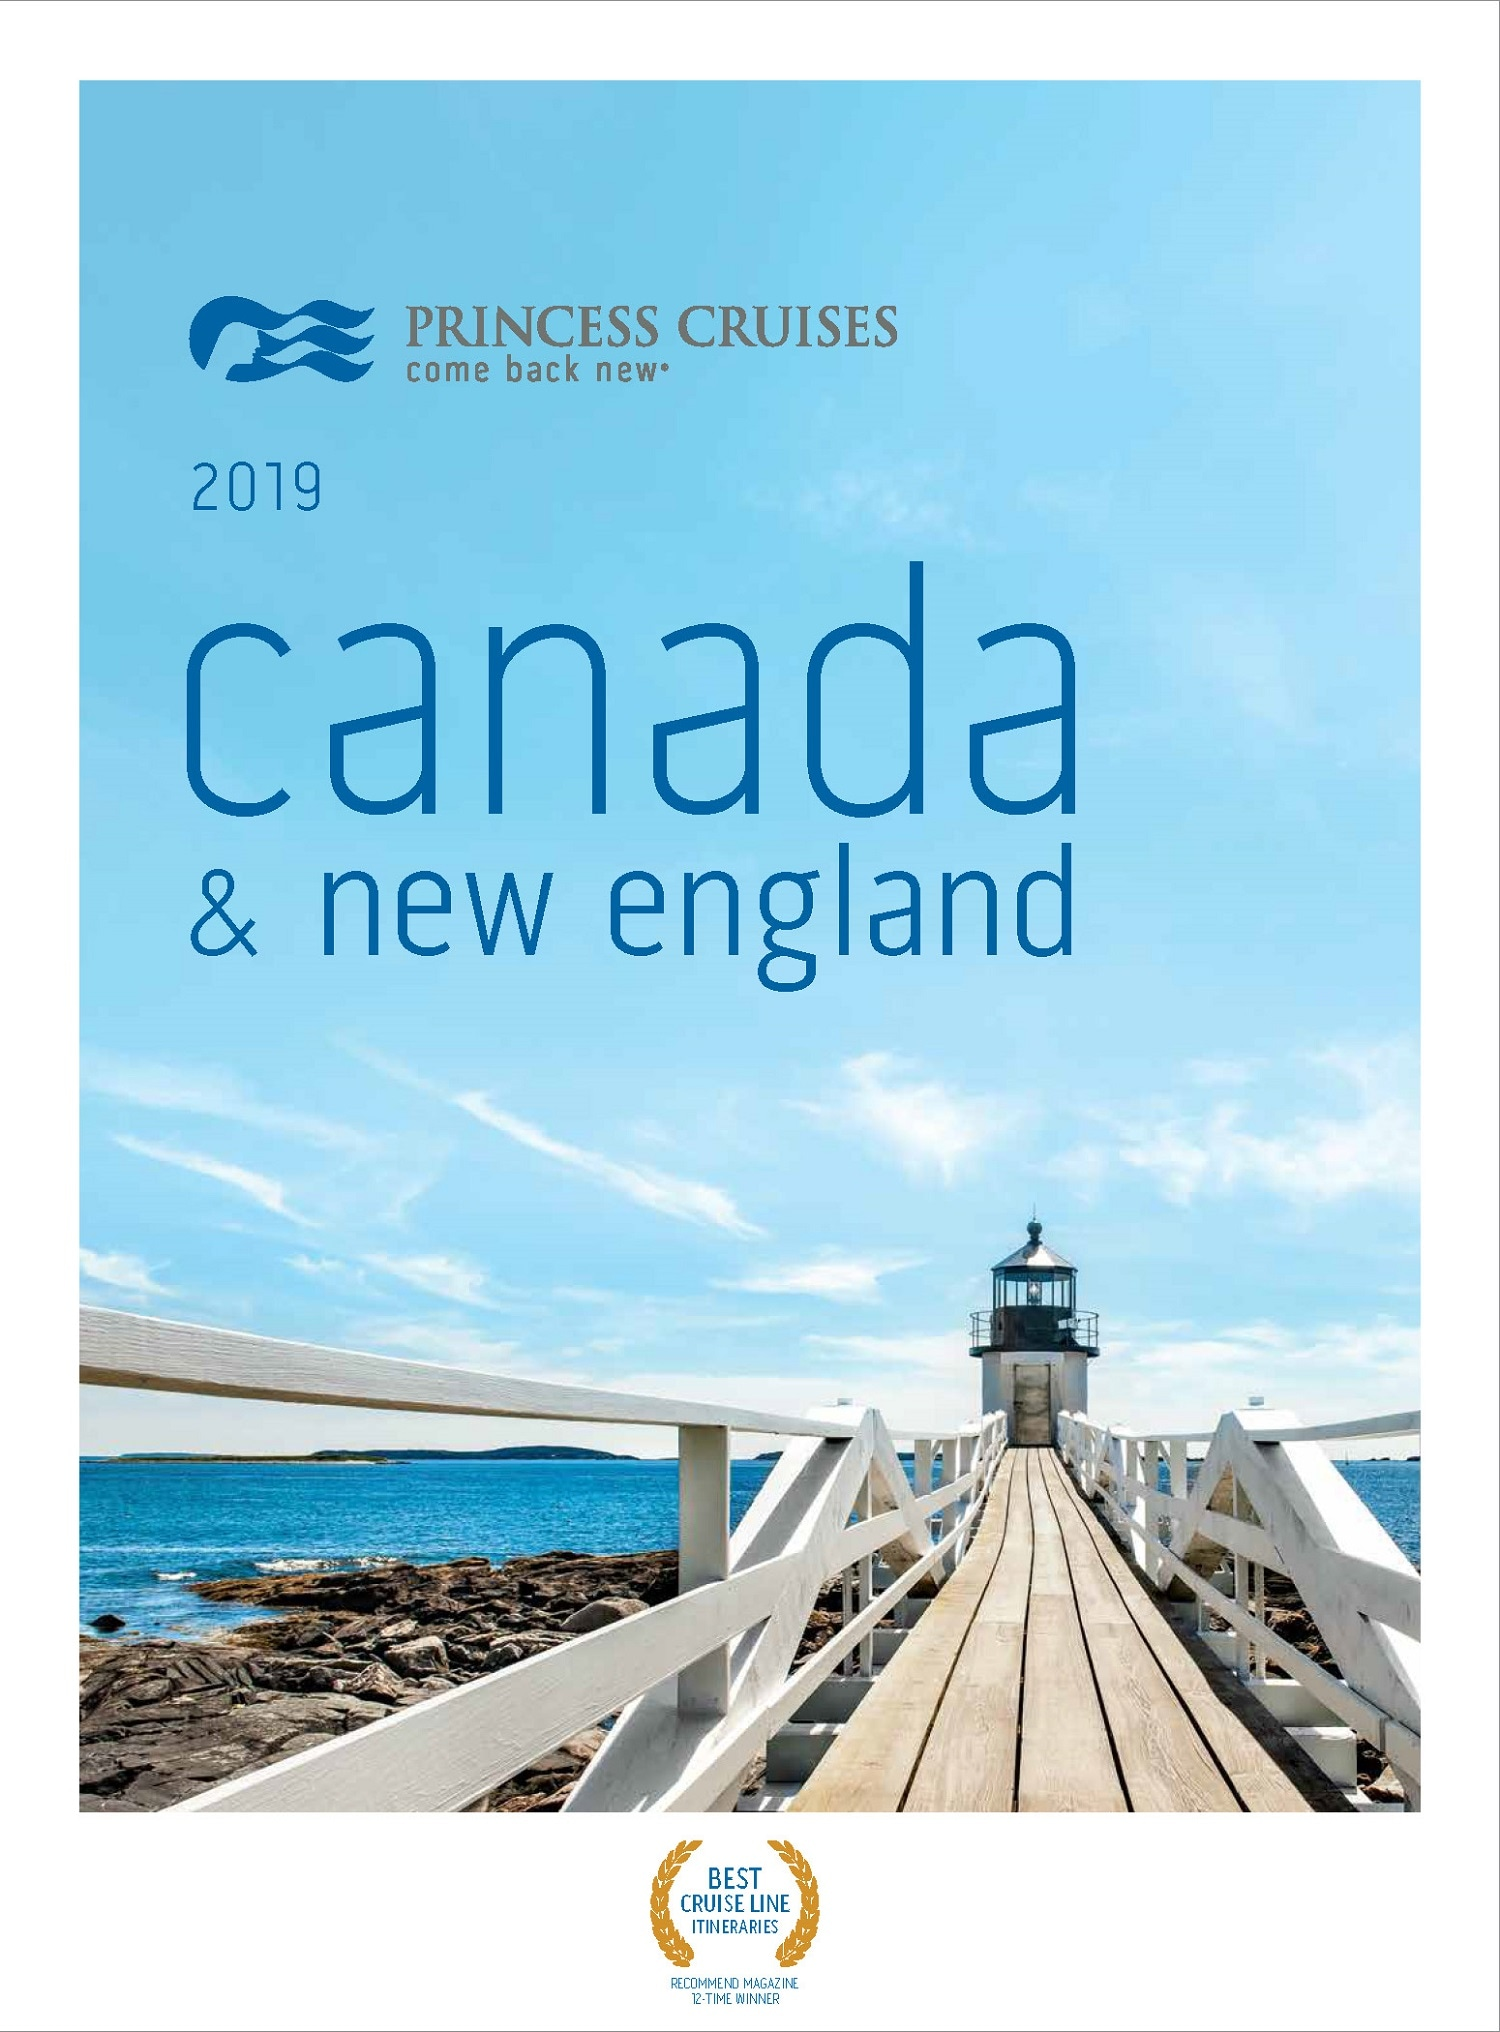 Best New England Cruises 2019 Princess Cruises Announces Largest Ever Fall 2019 Deployment to